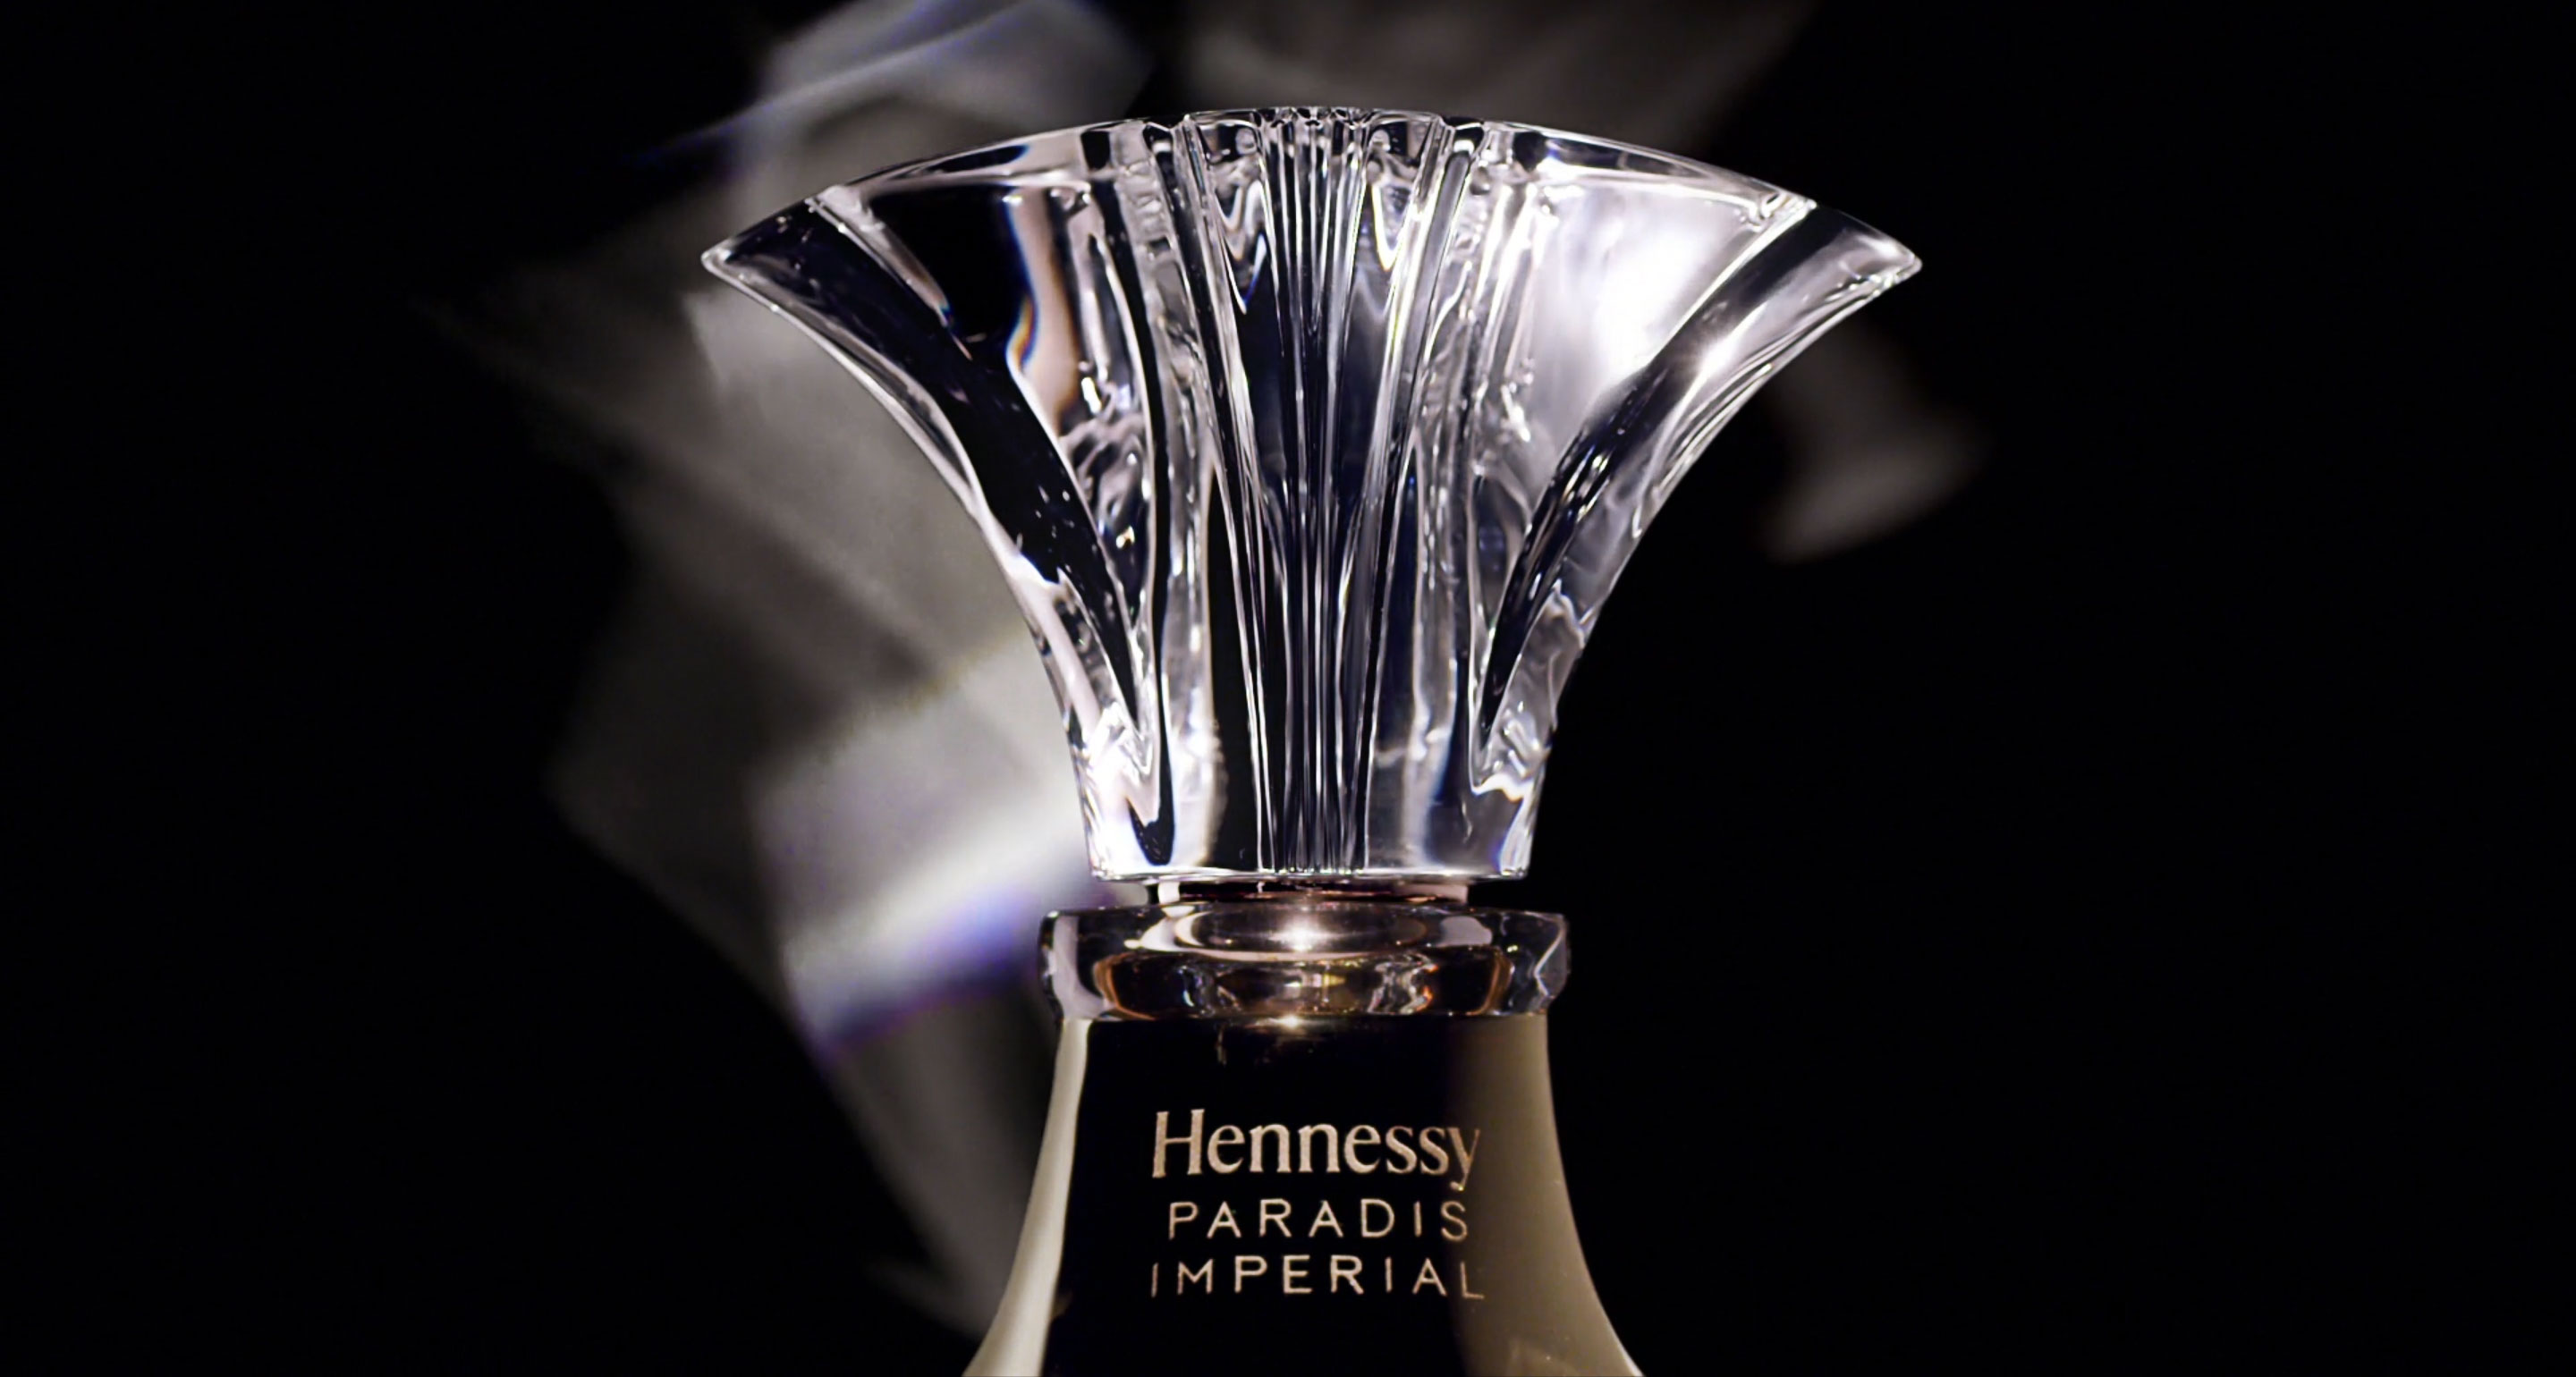 hennessy-hpi-film-evin-stories-preview.jpg